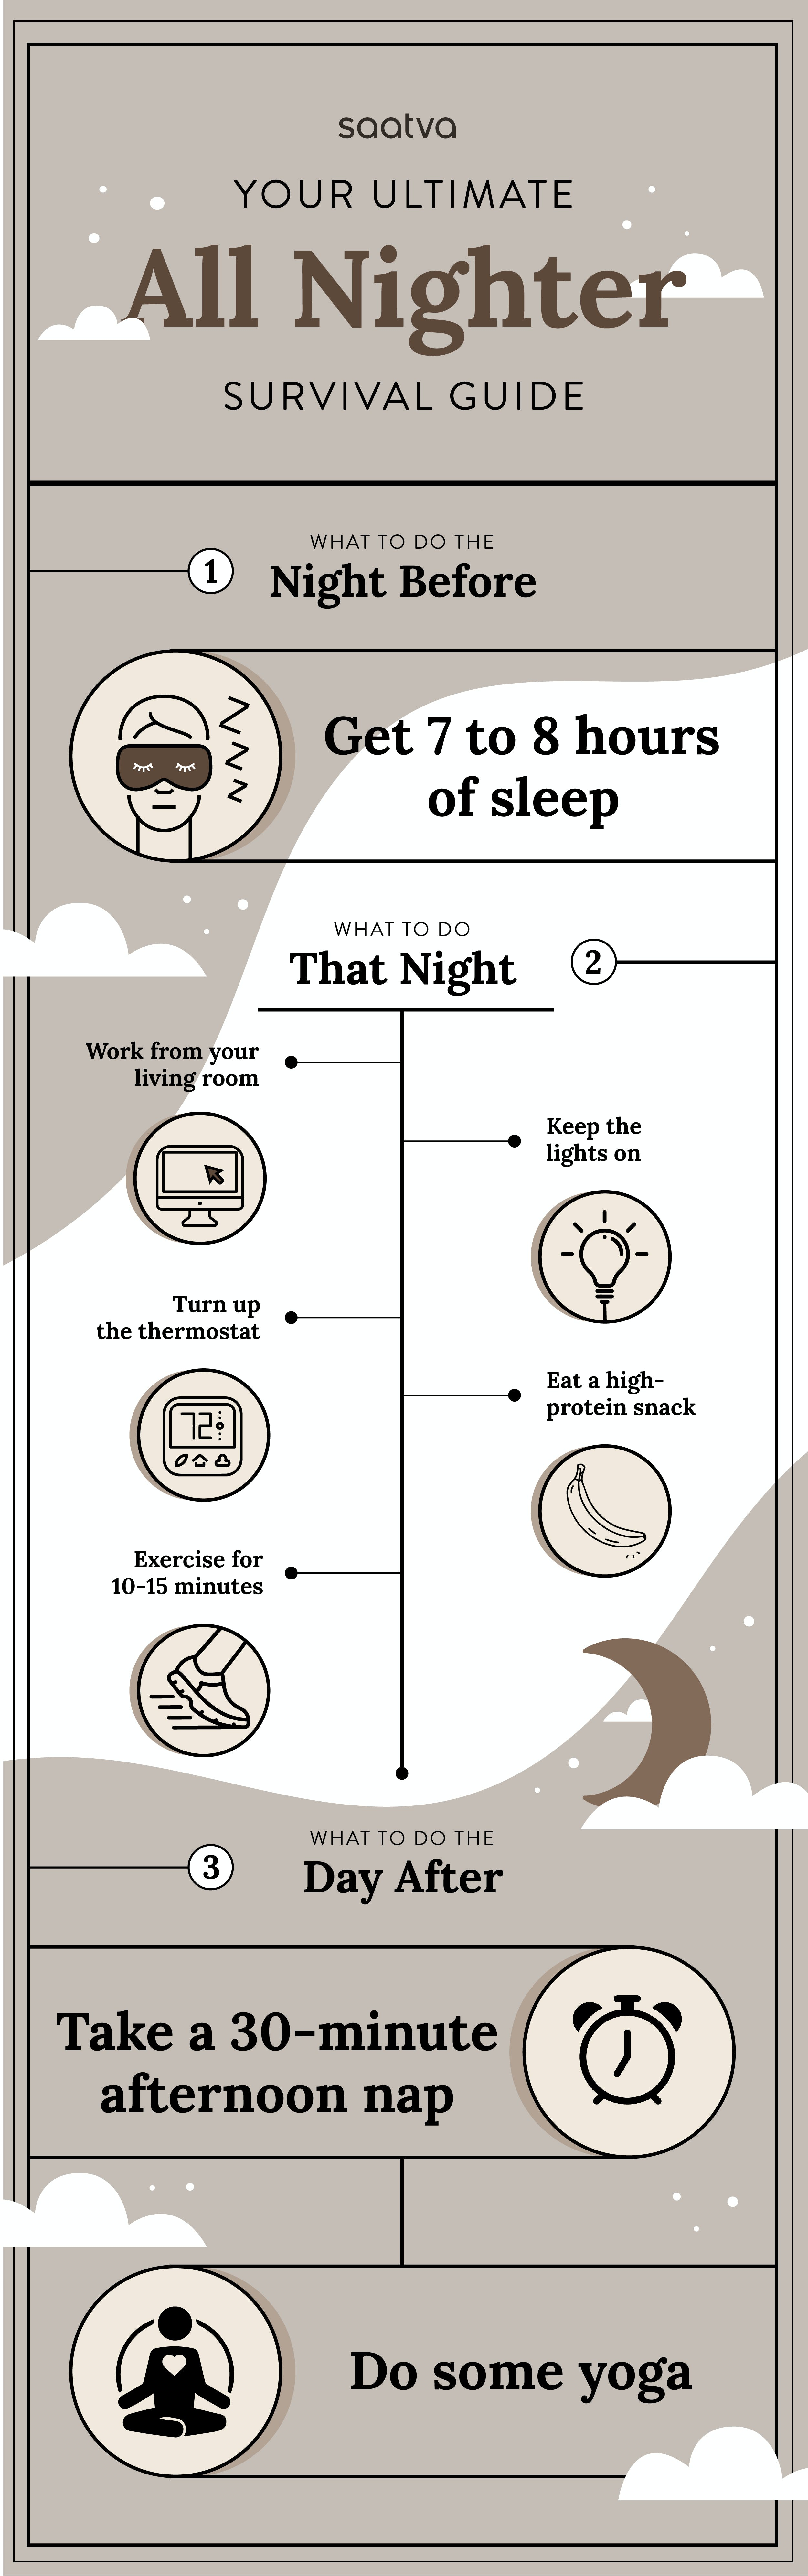 infographic survival guide featuring tips on how to stay awake